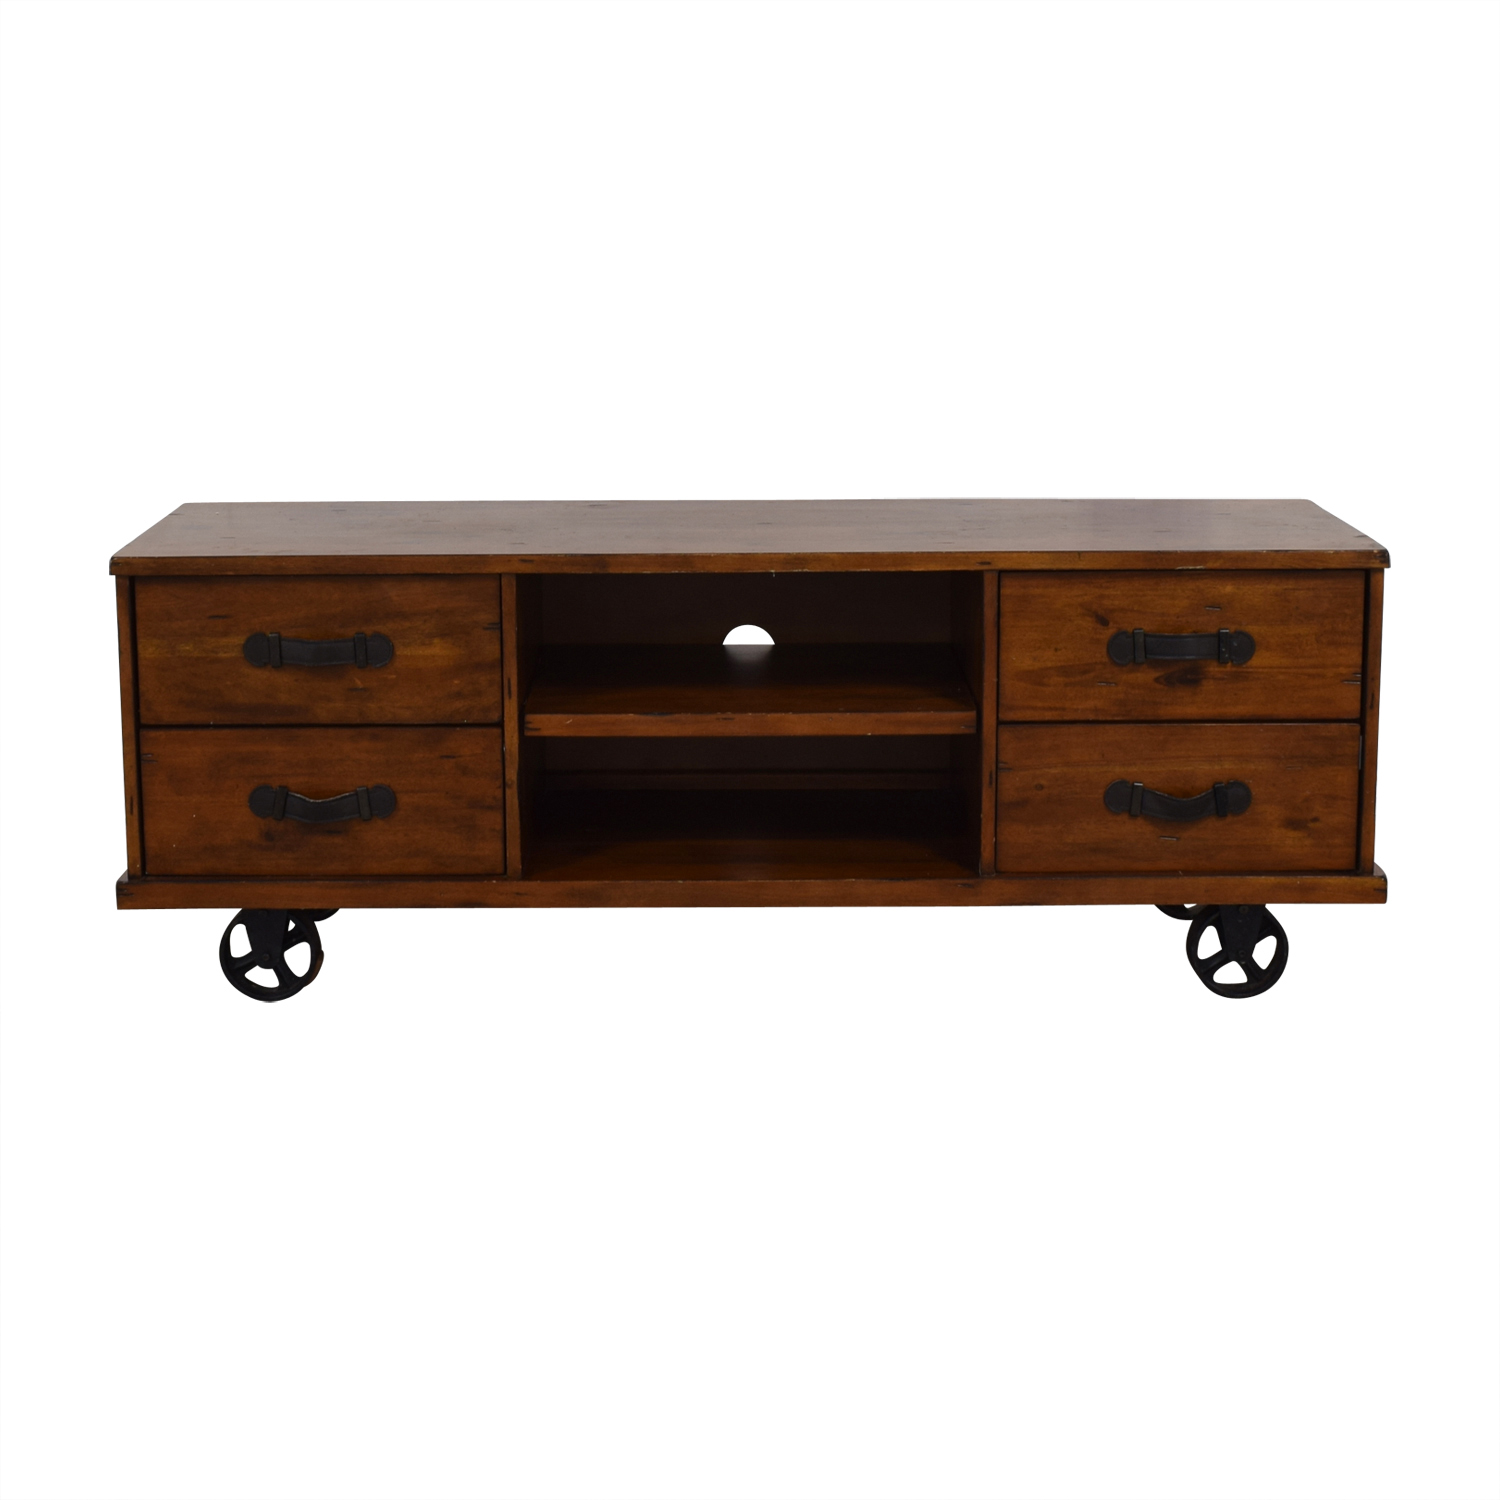 A & G Merch A & G Merch Wood Four-Drawer Media Console nj